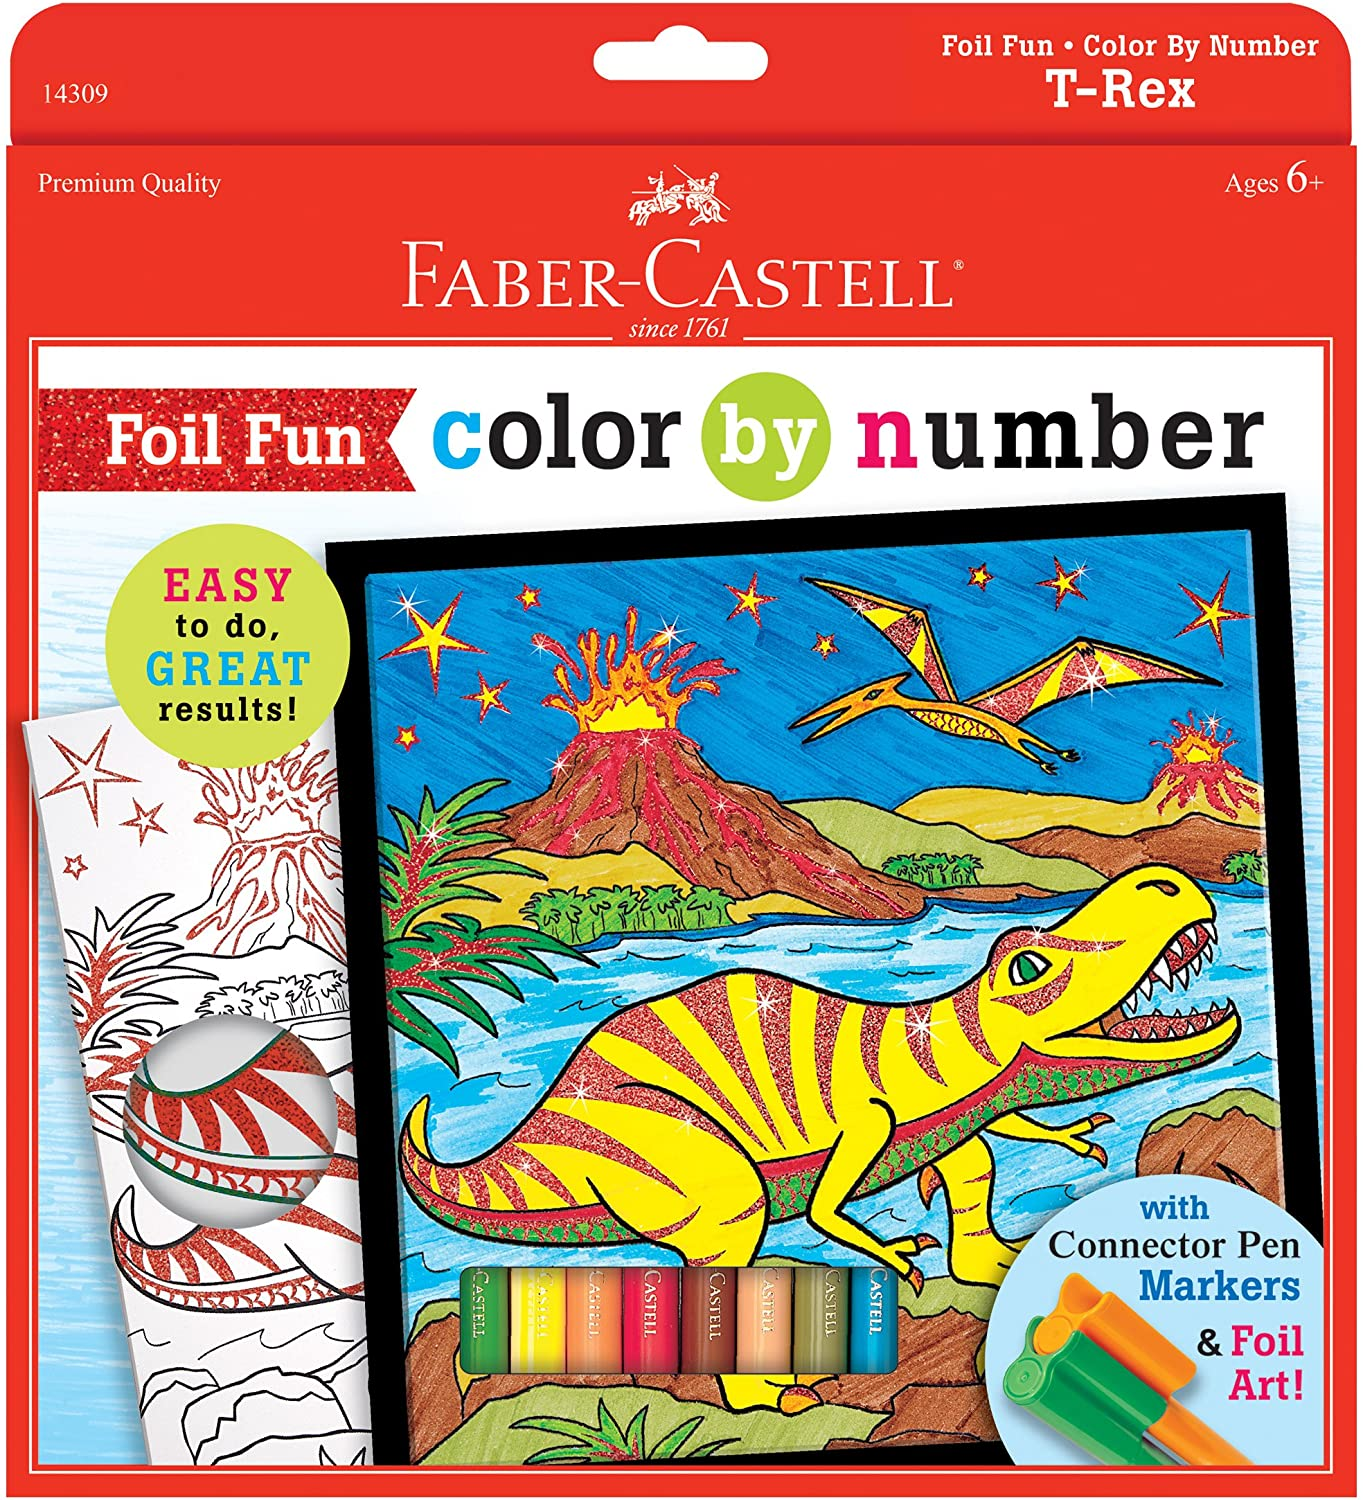 T-Rex Foil Fun Color By Number